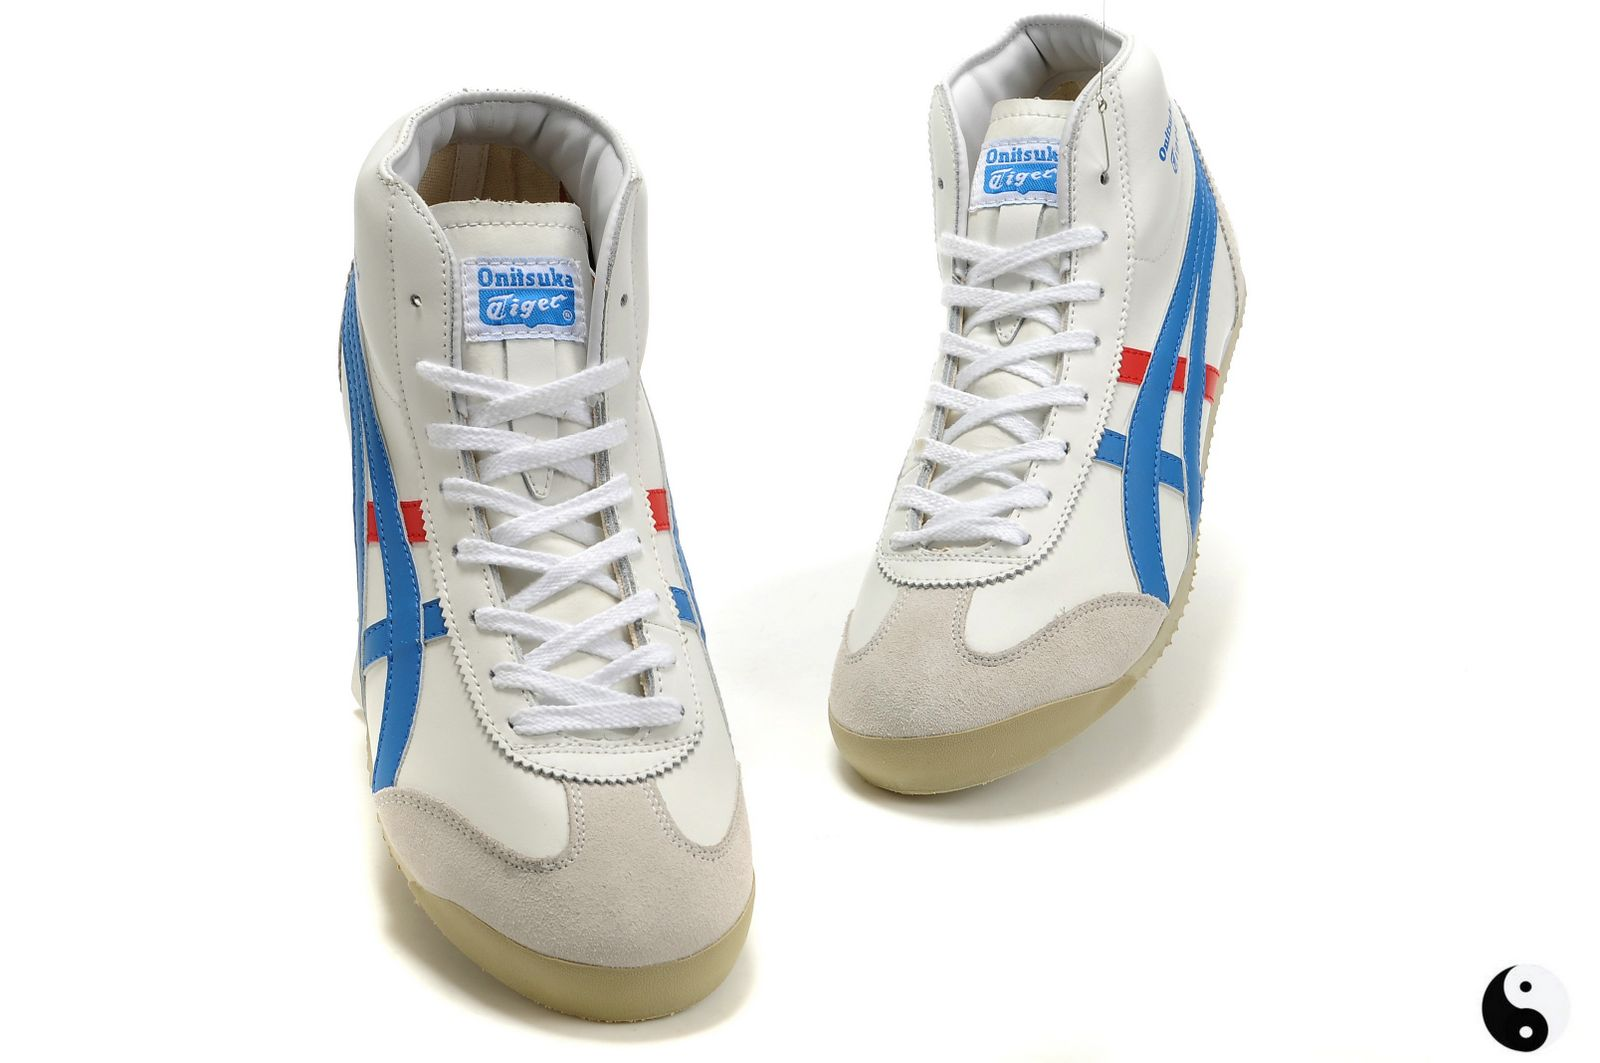 Onitsuka Tiger Mexico Mid Runner White/Blue/Red Women/Men